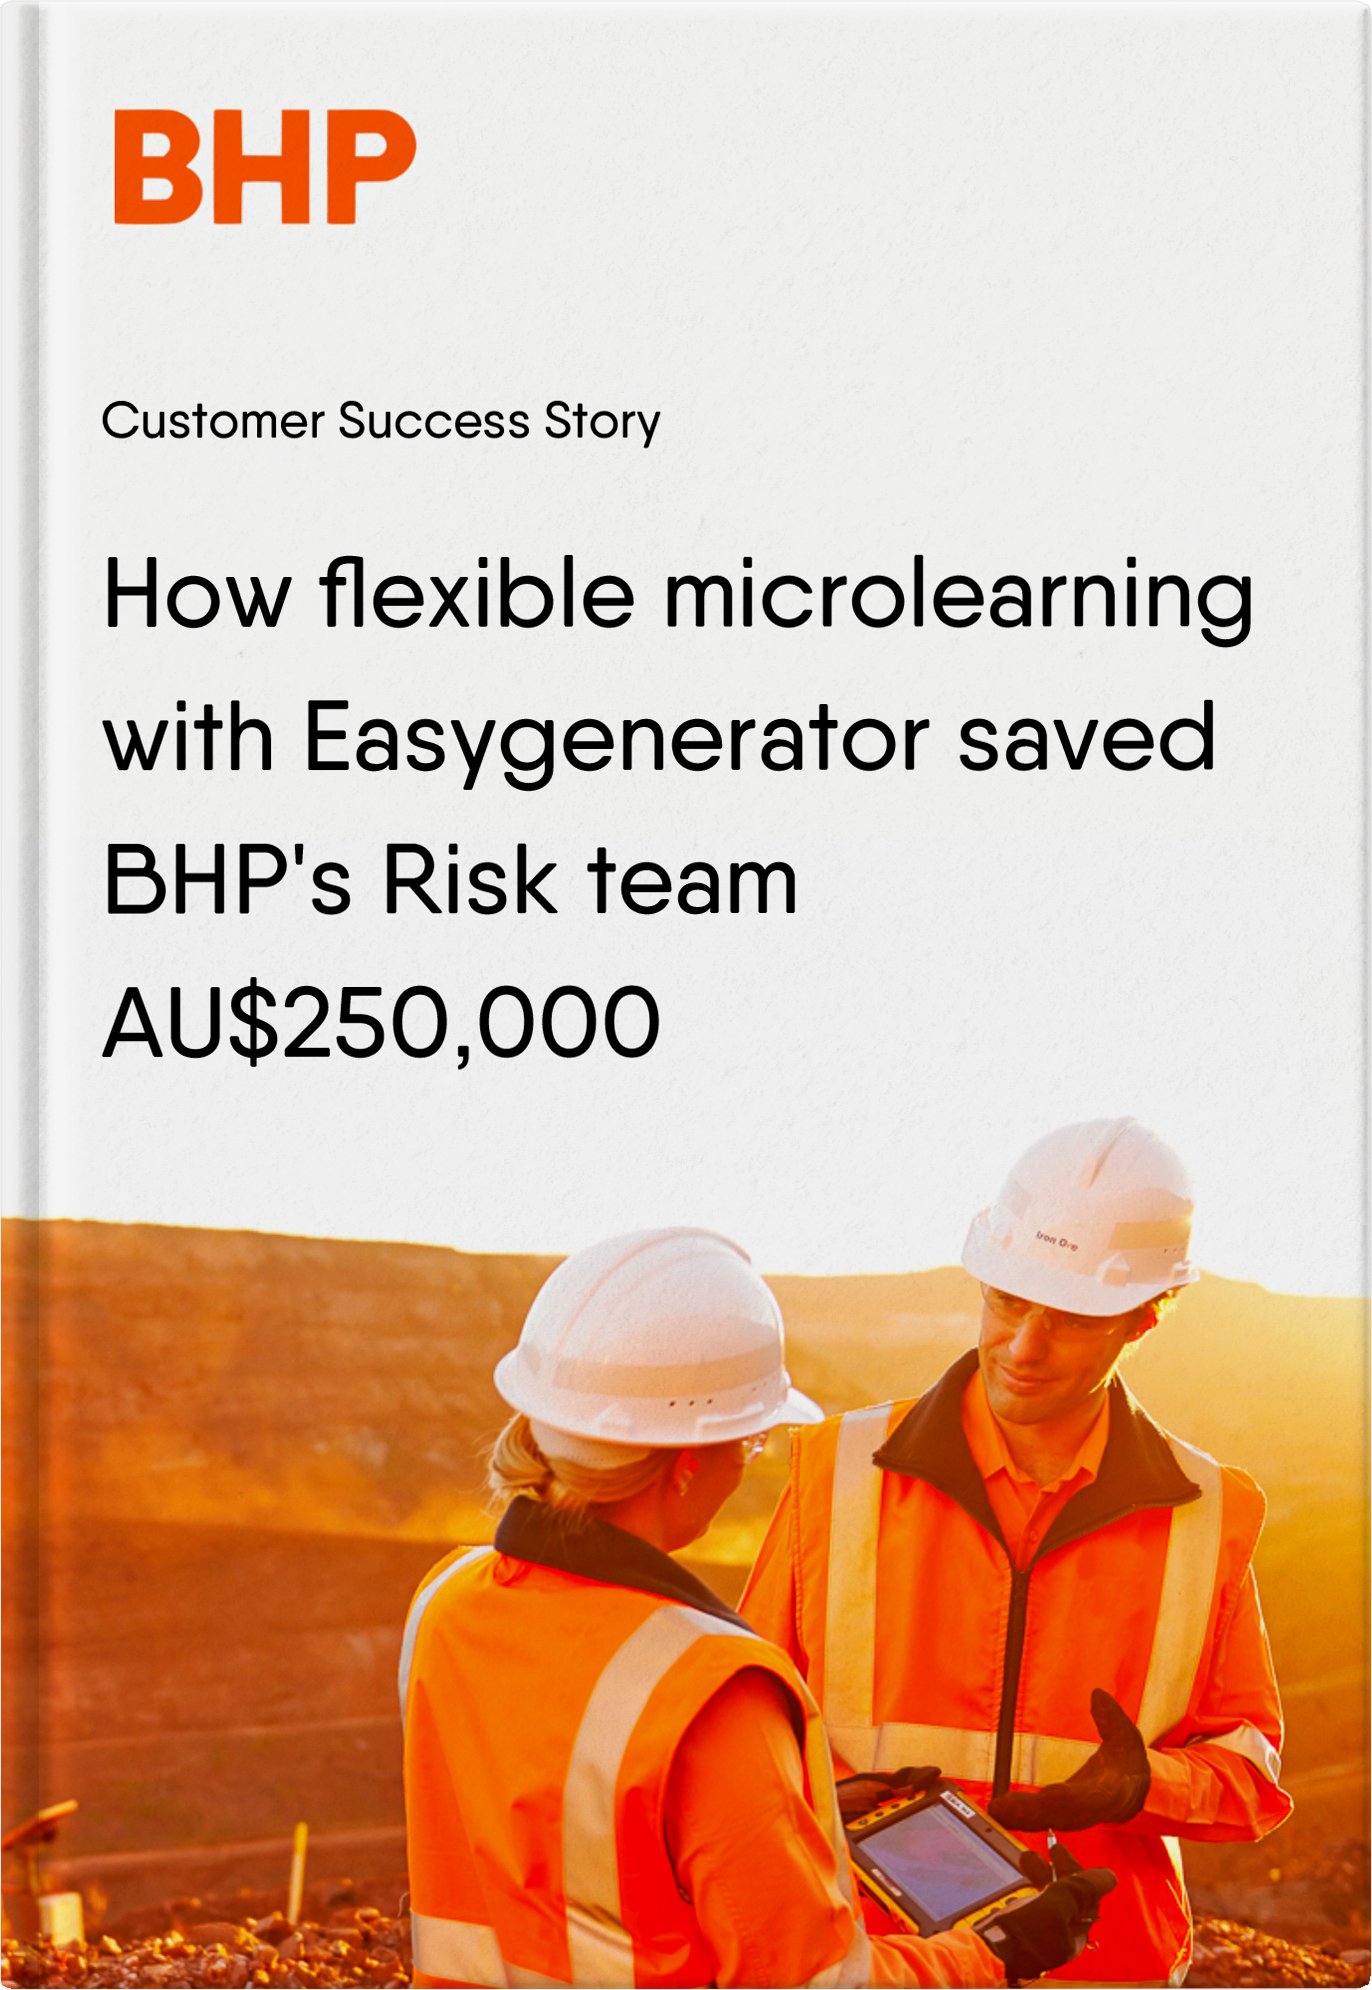 How microlearning with Easygenerator saved BHP over 250000 australian dollars!